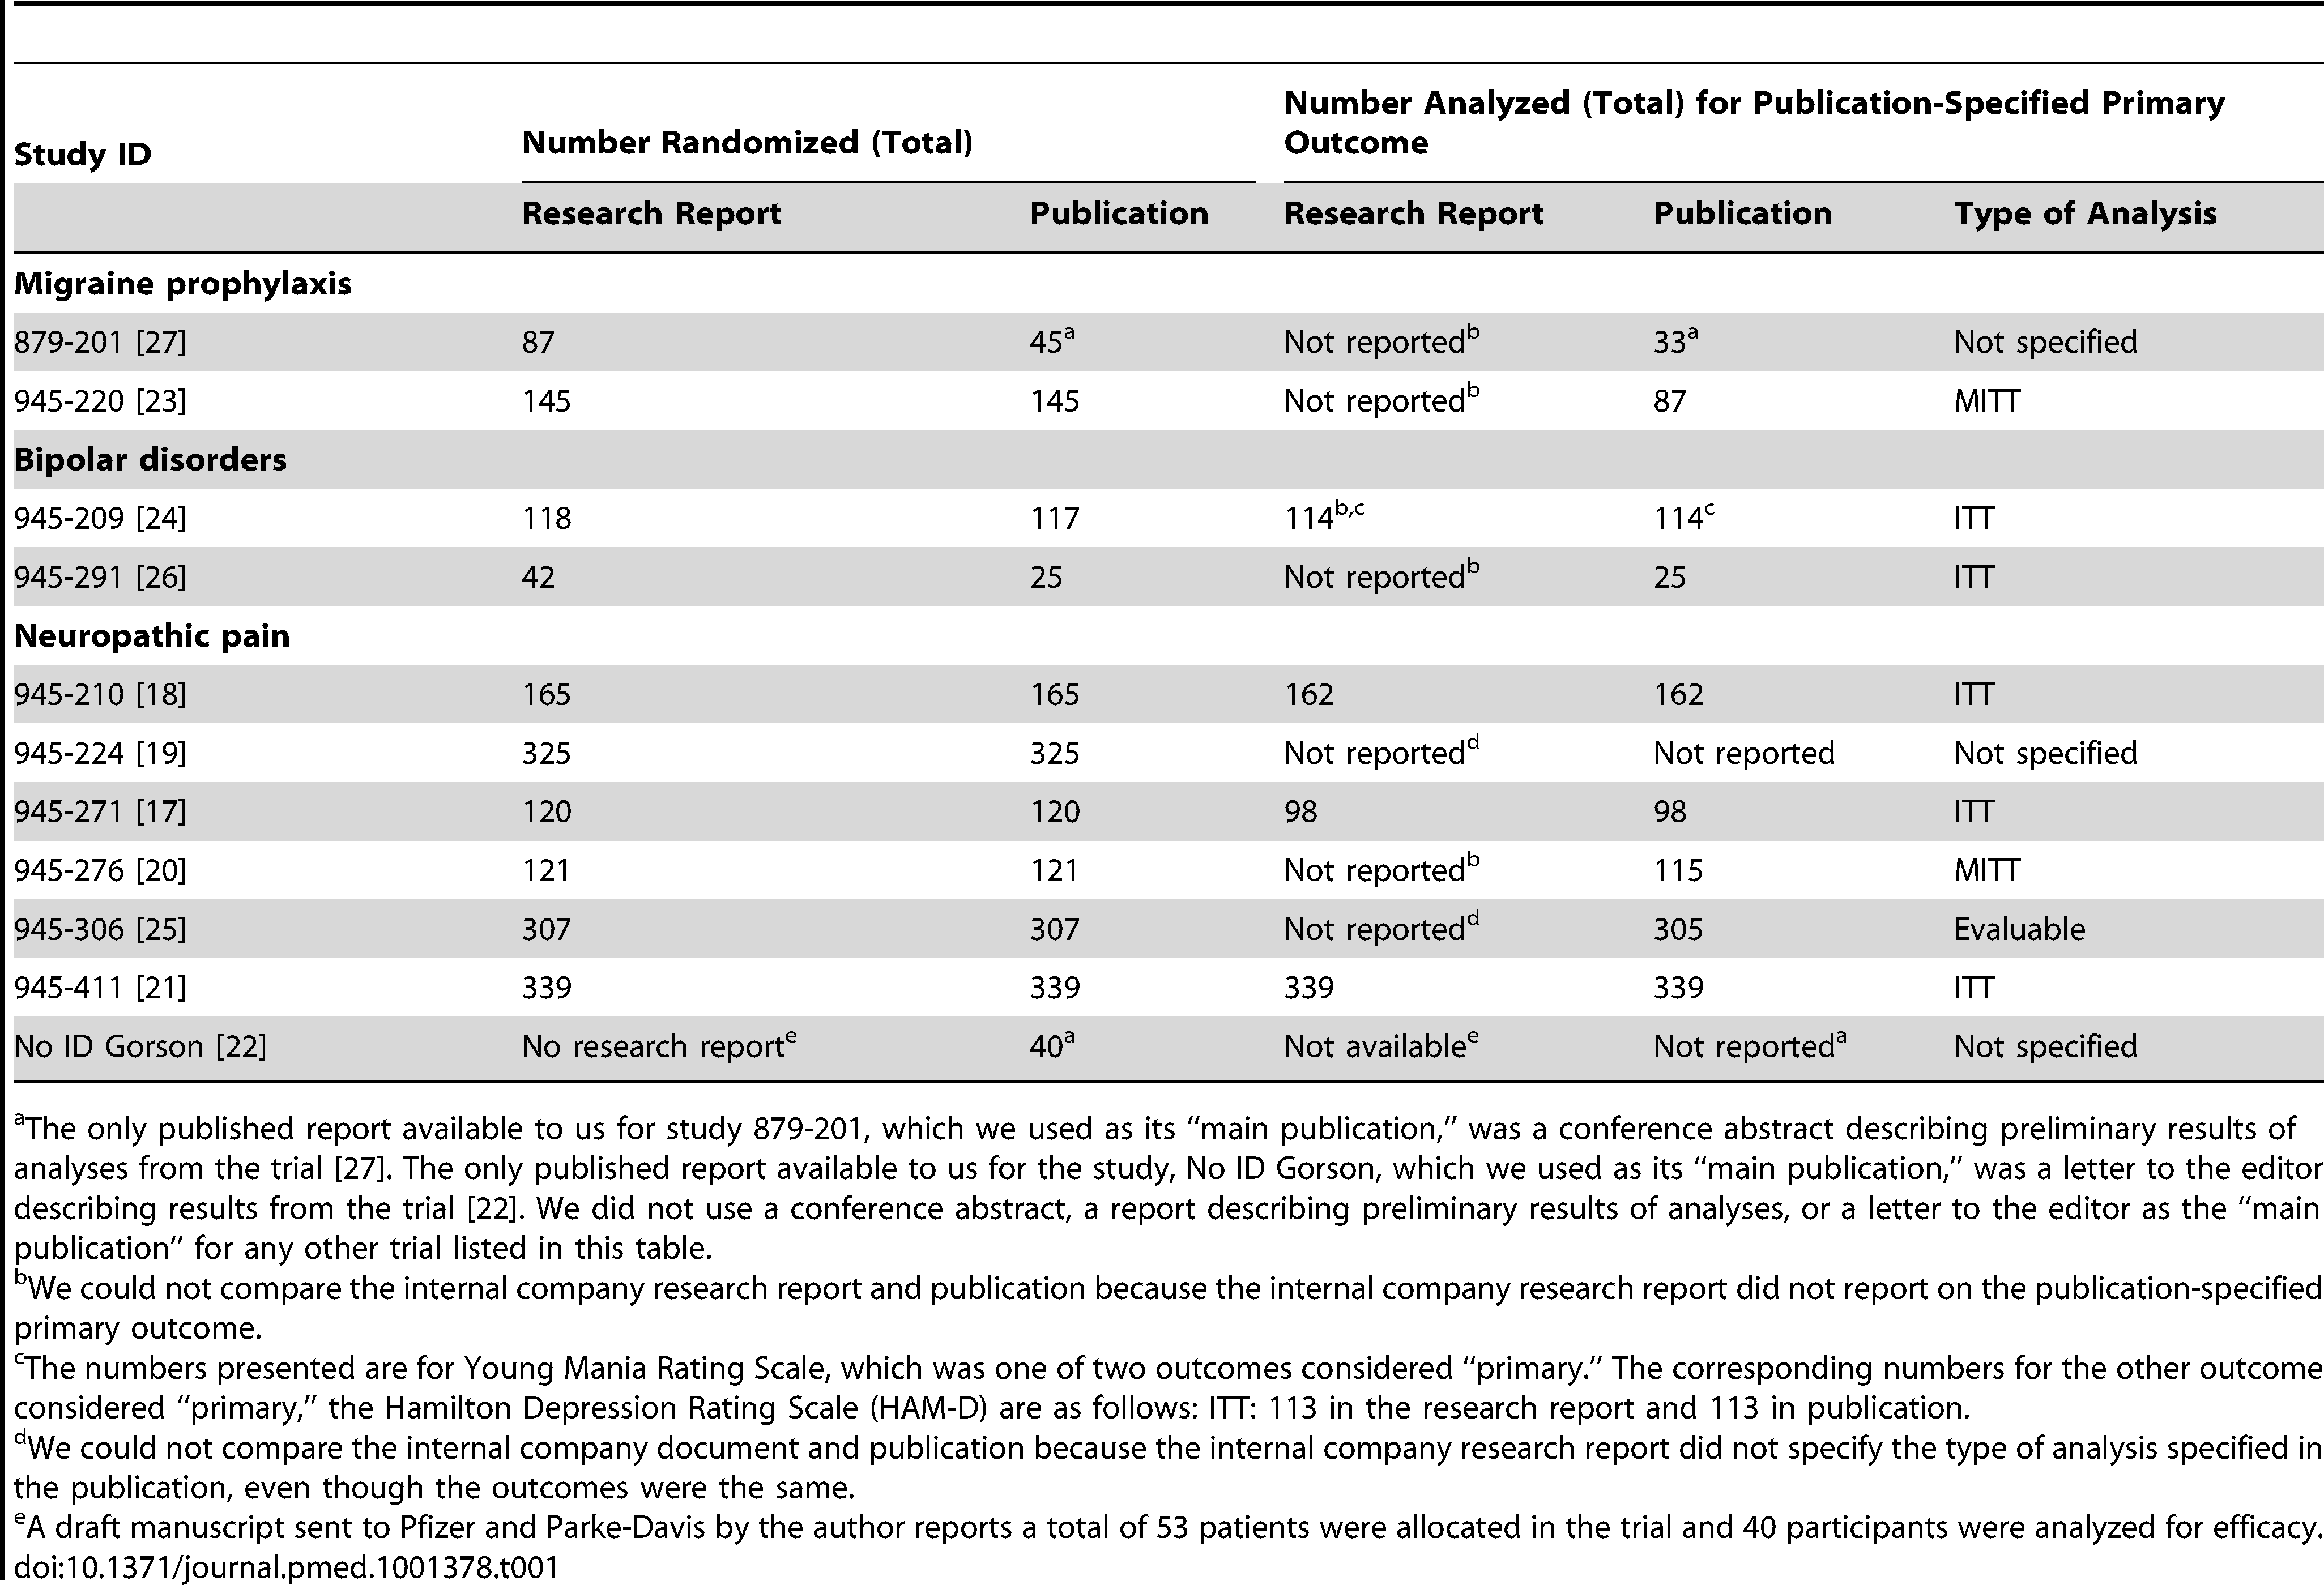 Total number of participants randomized and number analyzed for efficacy per research report and publication for the publication-specified primary outcome.